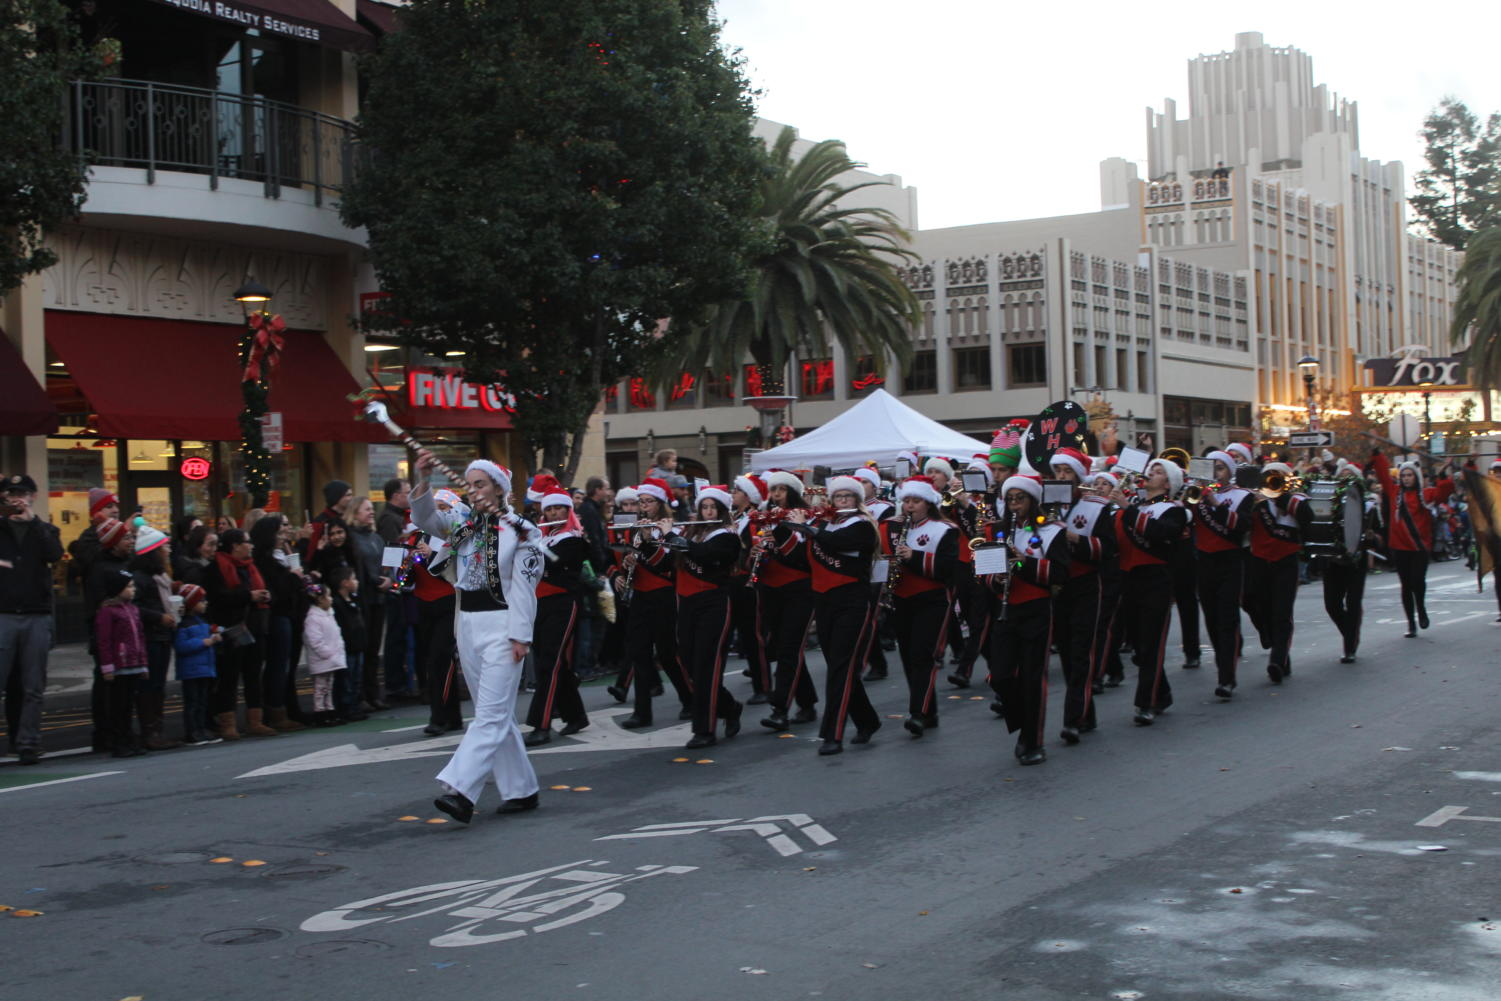 Woodside+High+School%27s+marching+band+strolls+through+the+parade%2C+playing+songs+as+they+go.